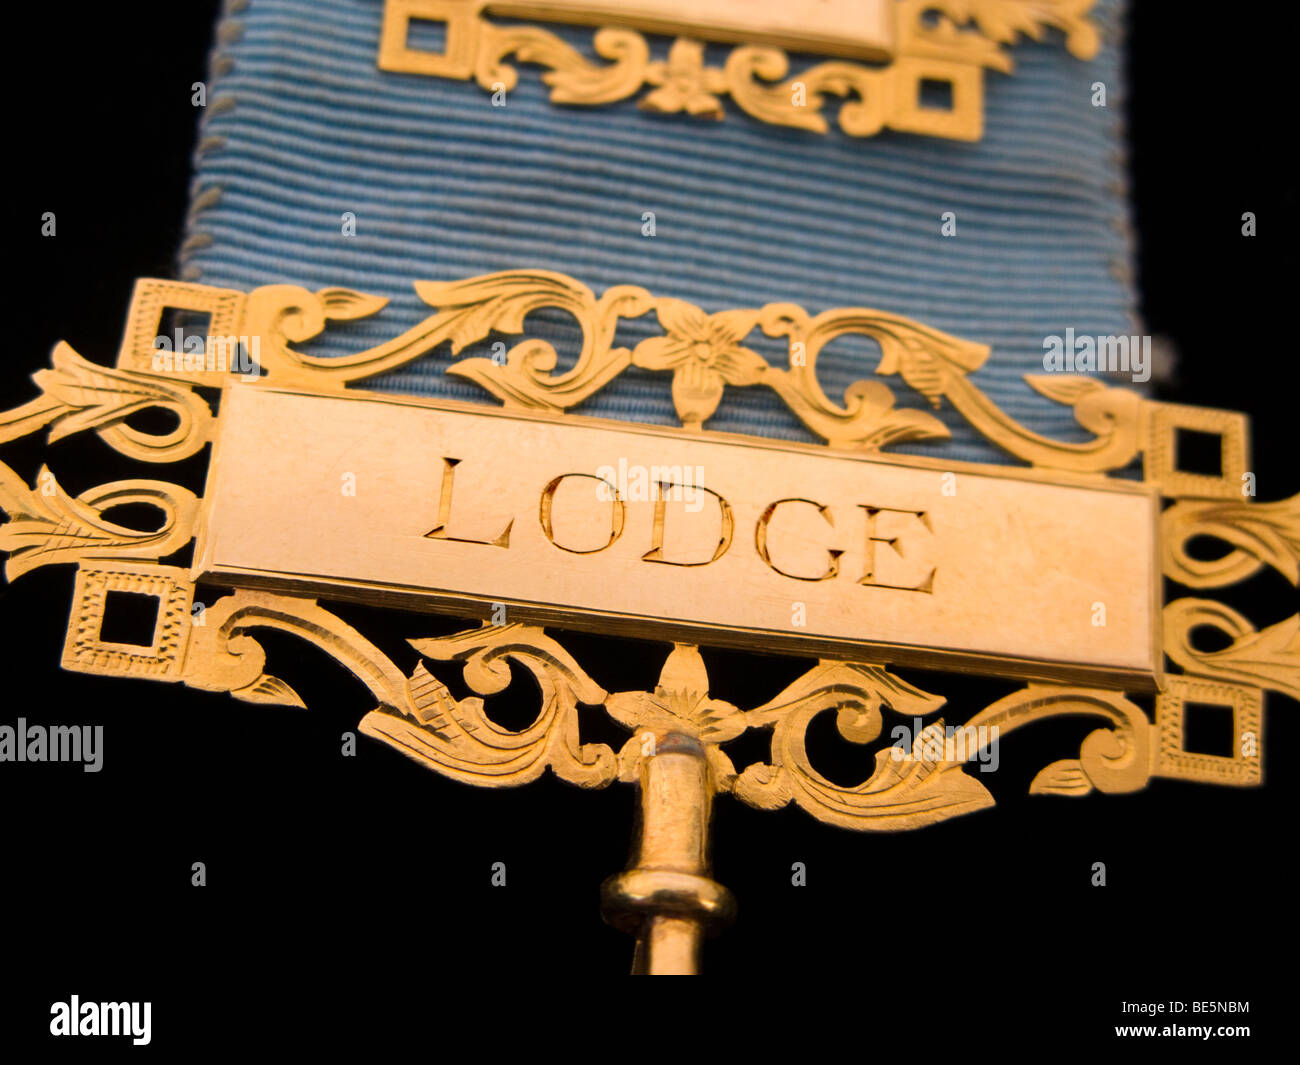 Lodge engraving on a Masonic Past Master Medal's bar, in 18 carat